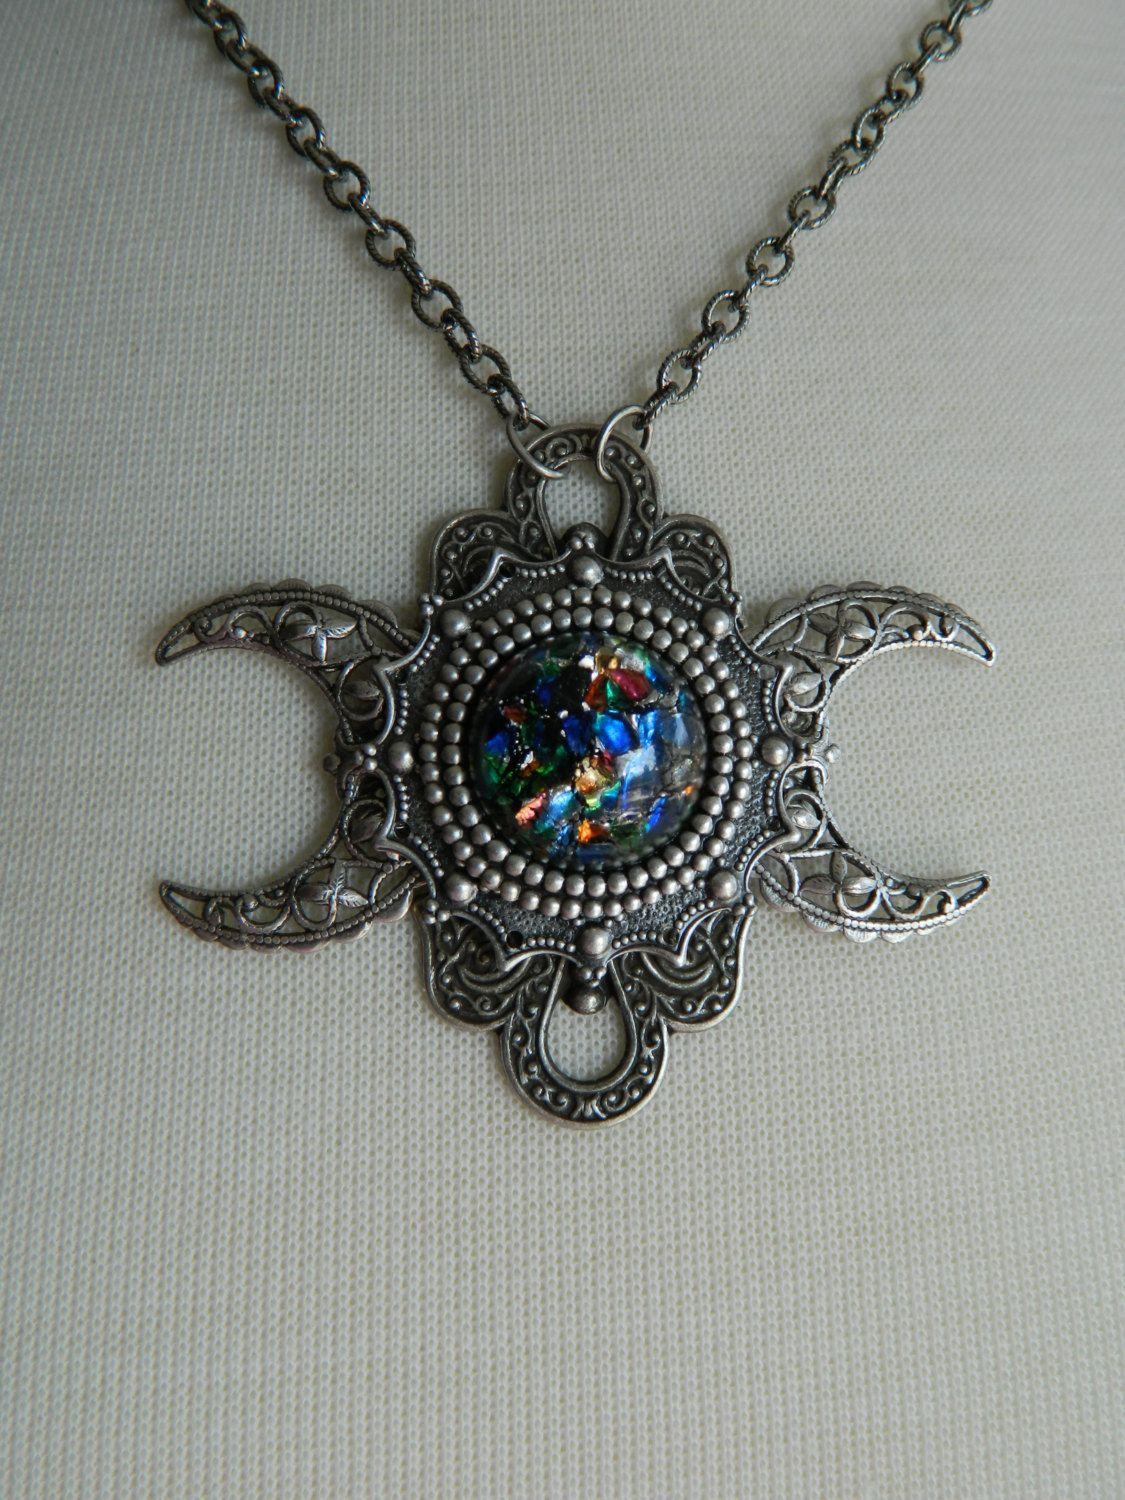 watch came miss hecate the in necklace today my hardbroom tumblr pendant pocket post